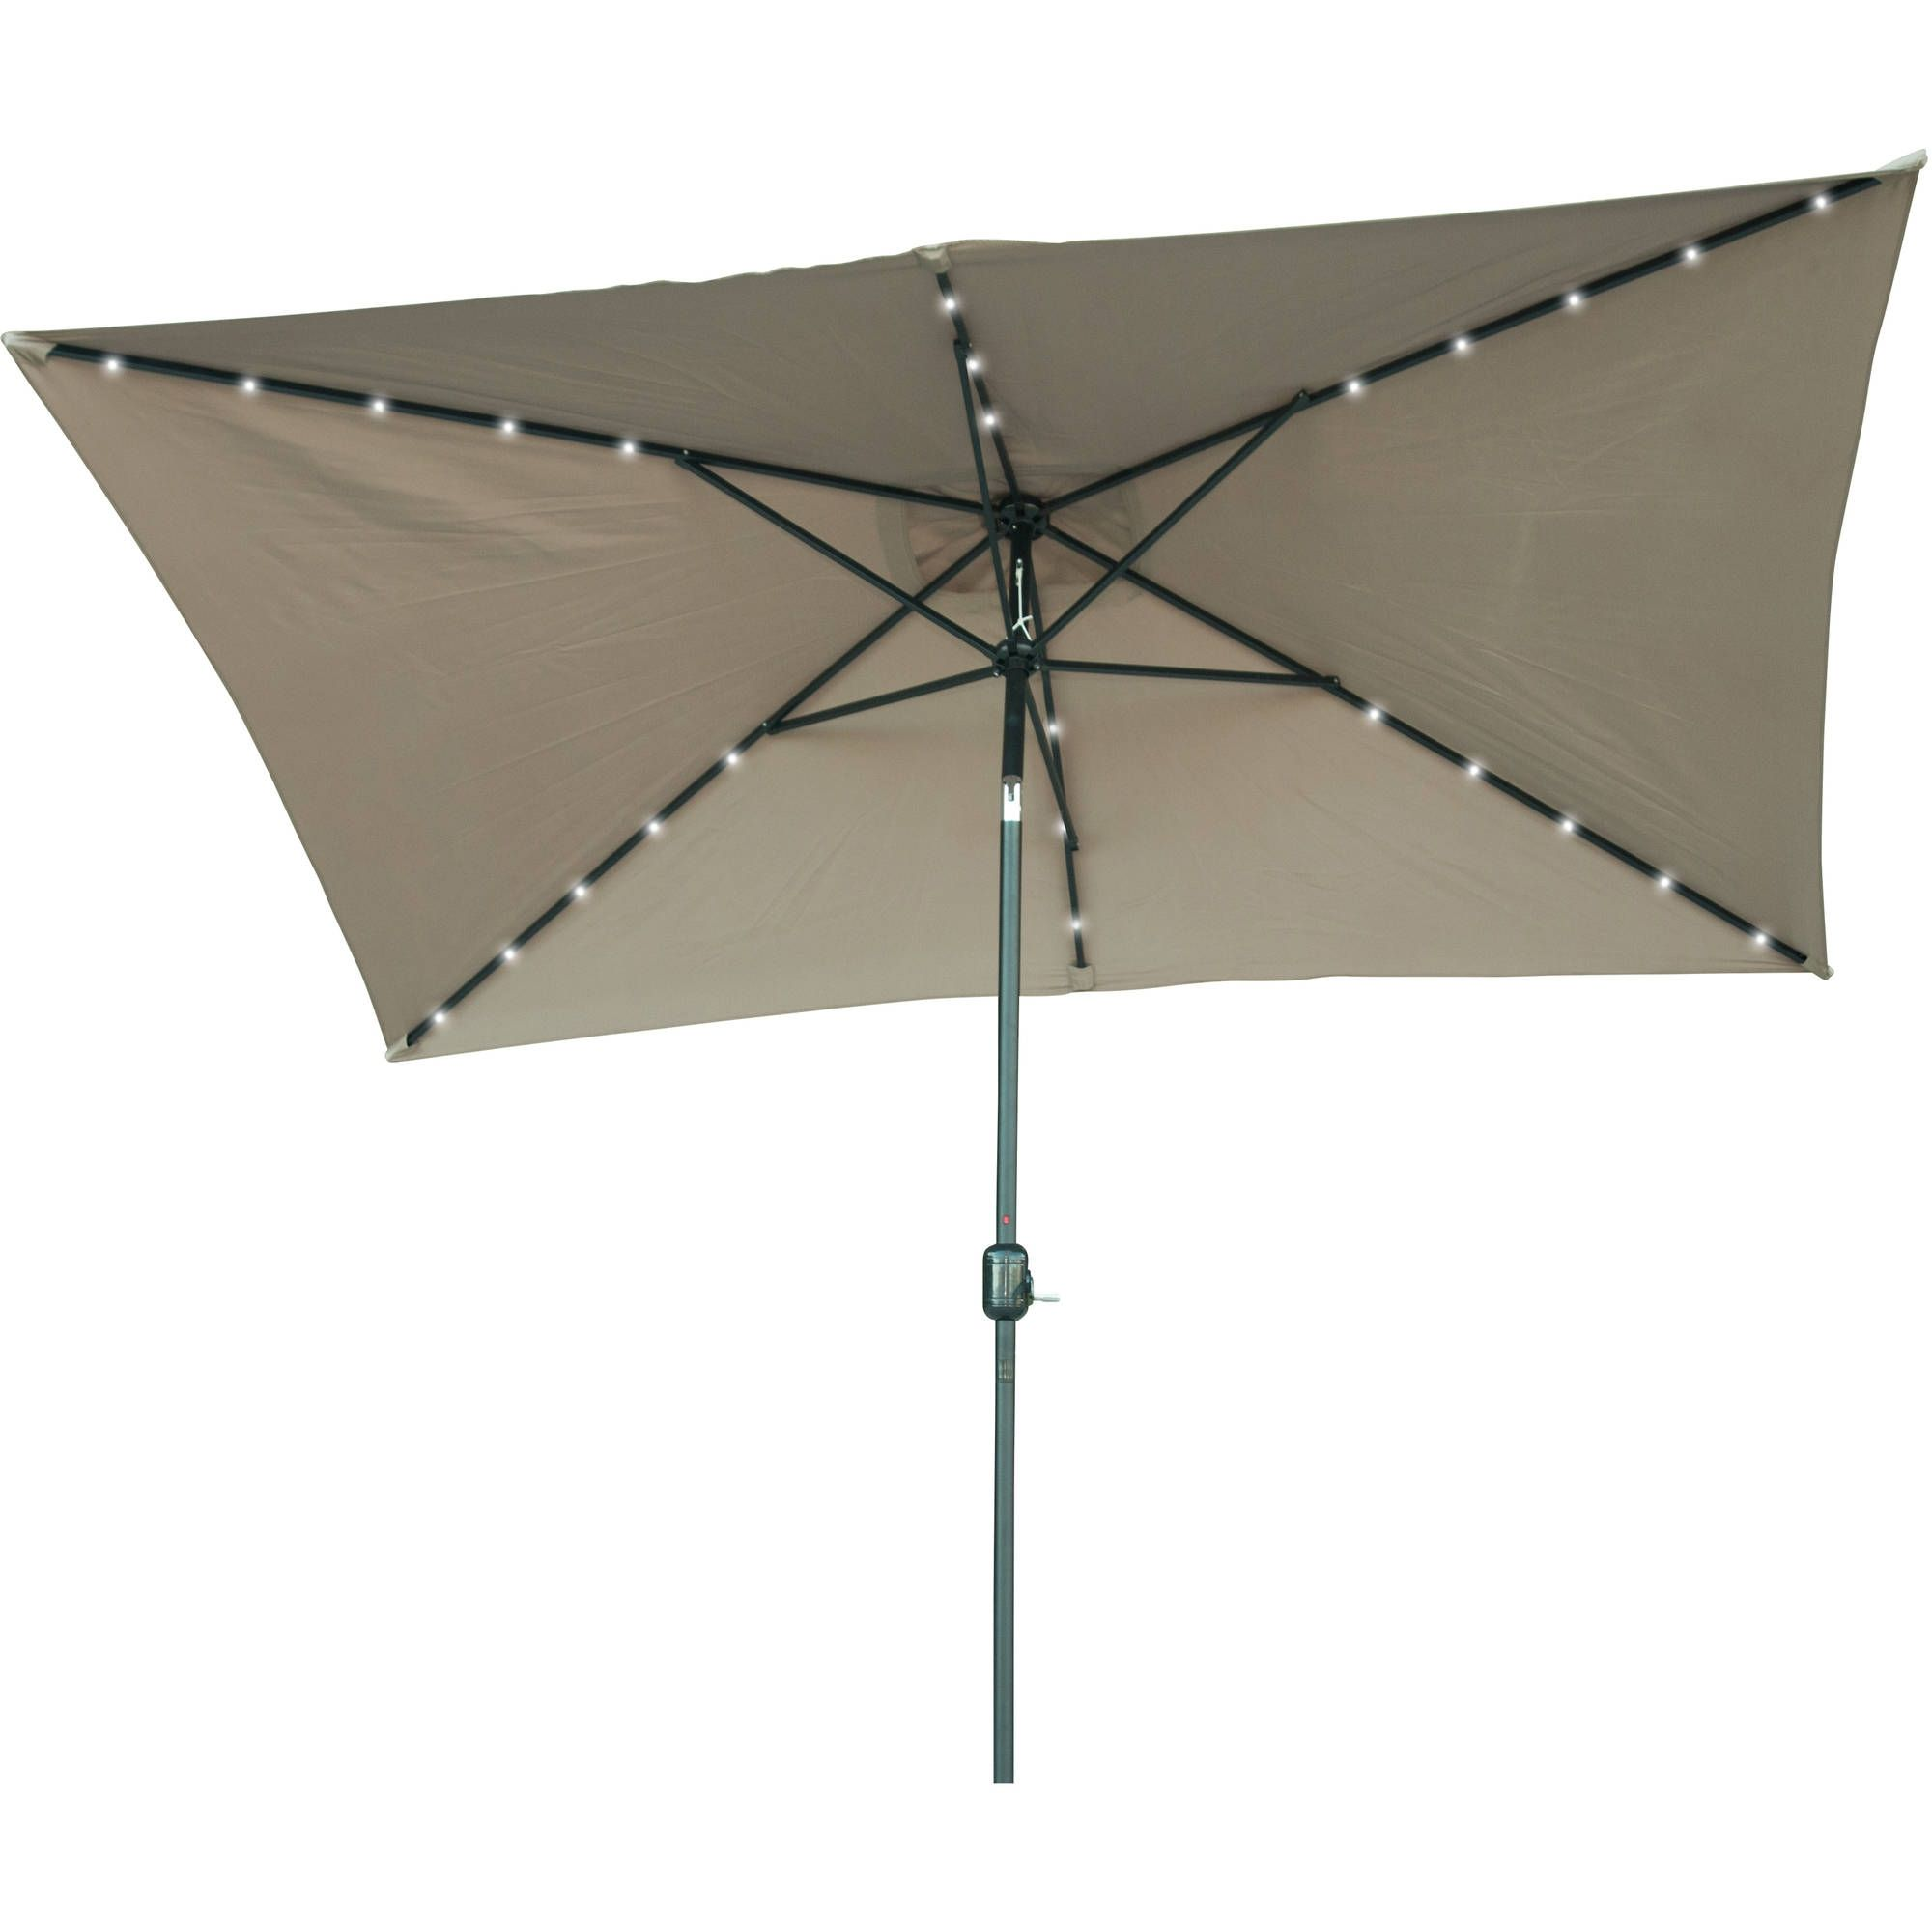 Rectangular Patio Umbrella With Solar Lights Amusing Rectangular Patio Umbrella With Solar Lights  Patio Decor Review